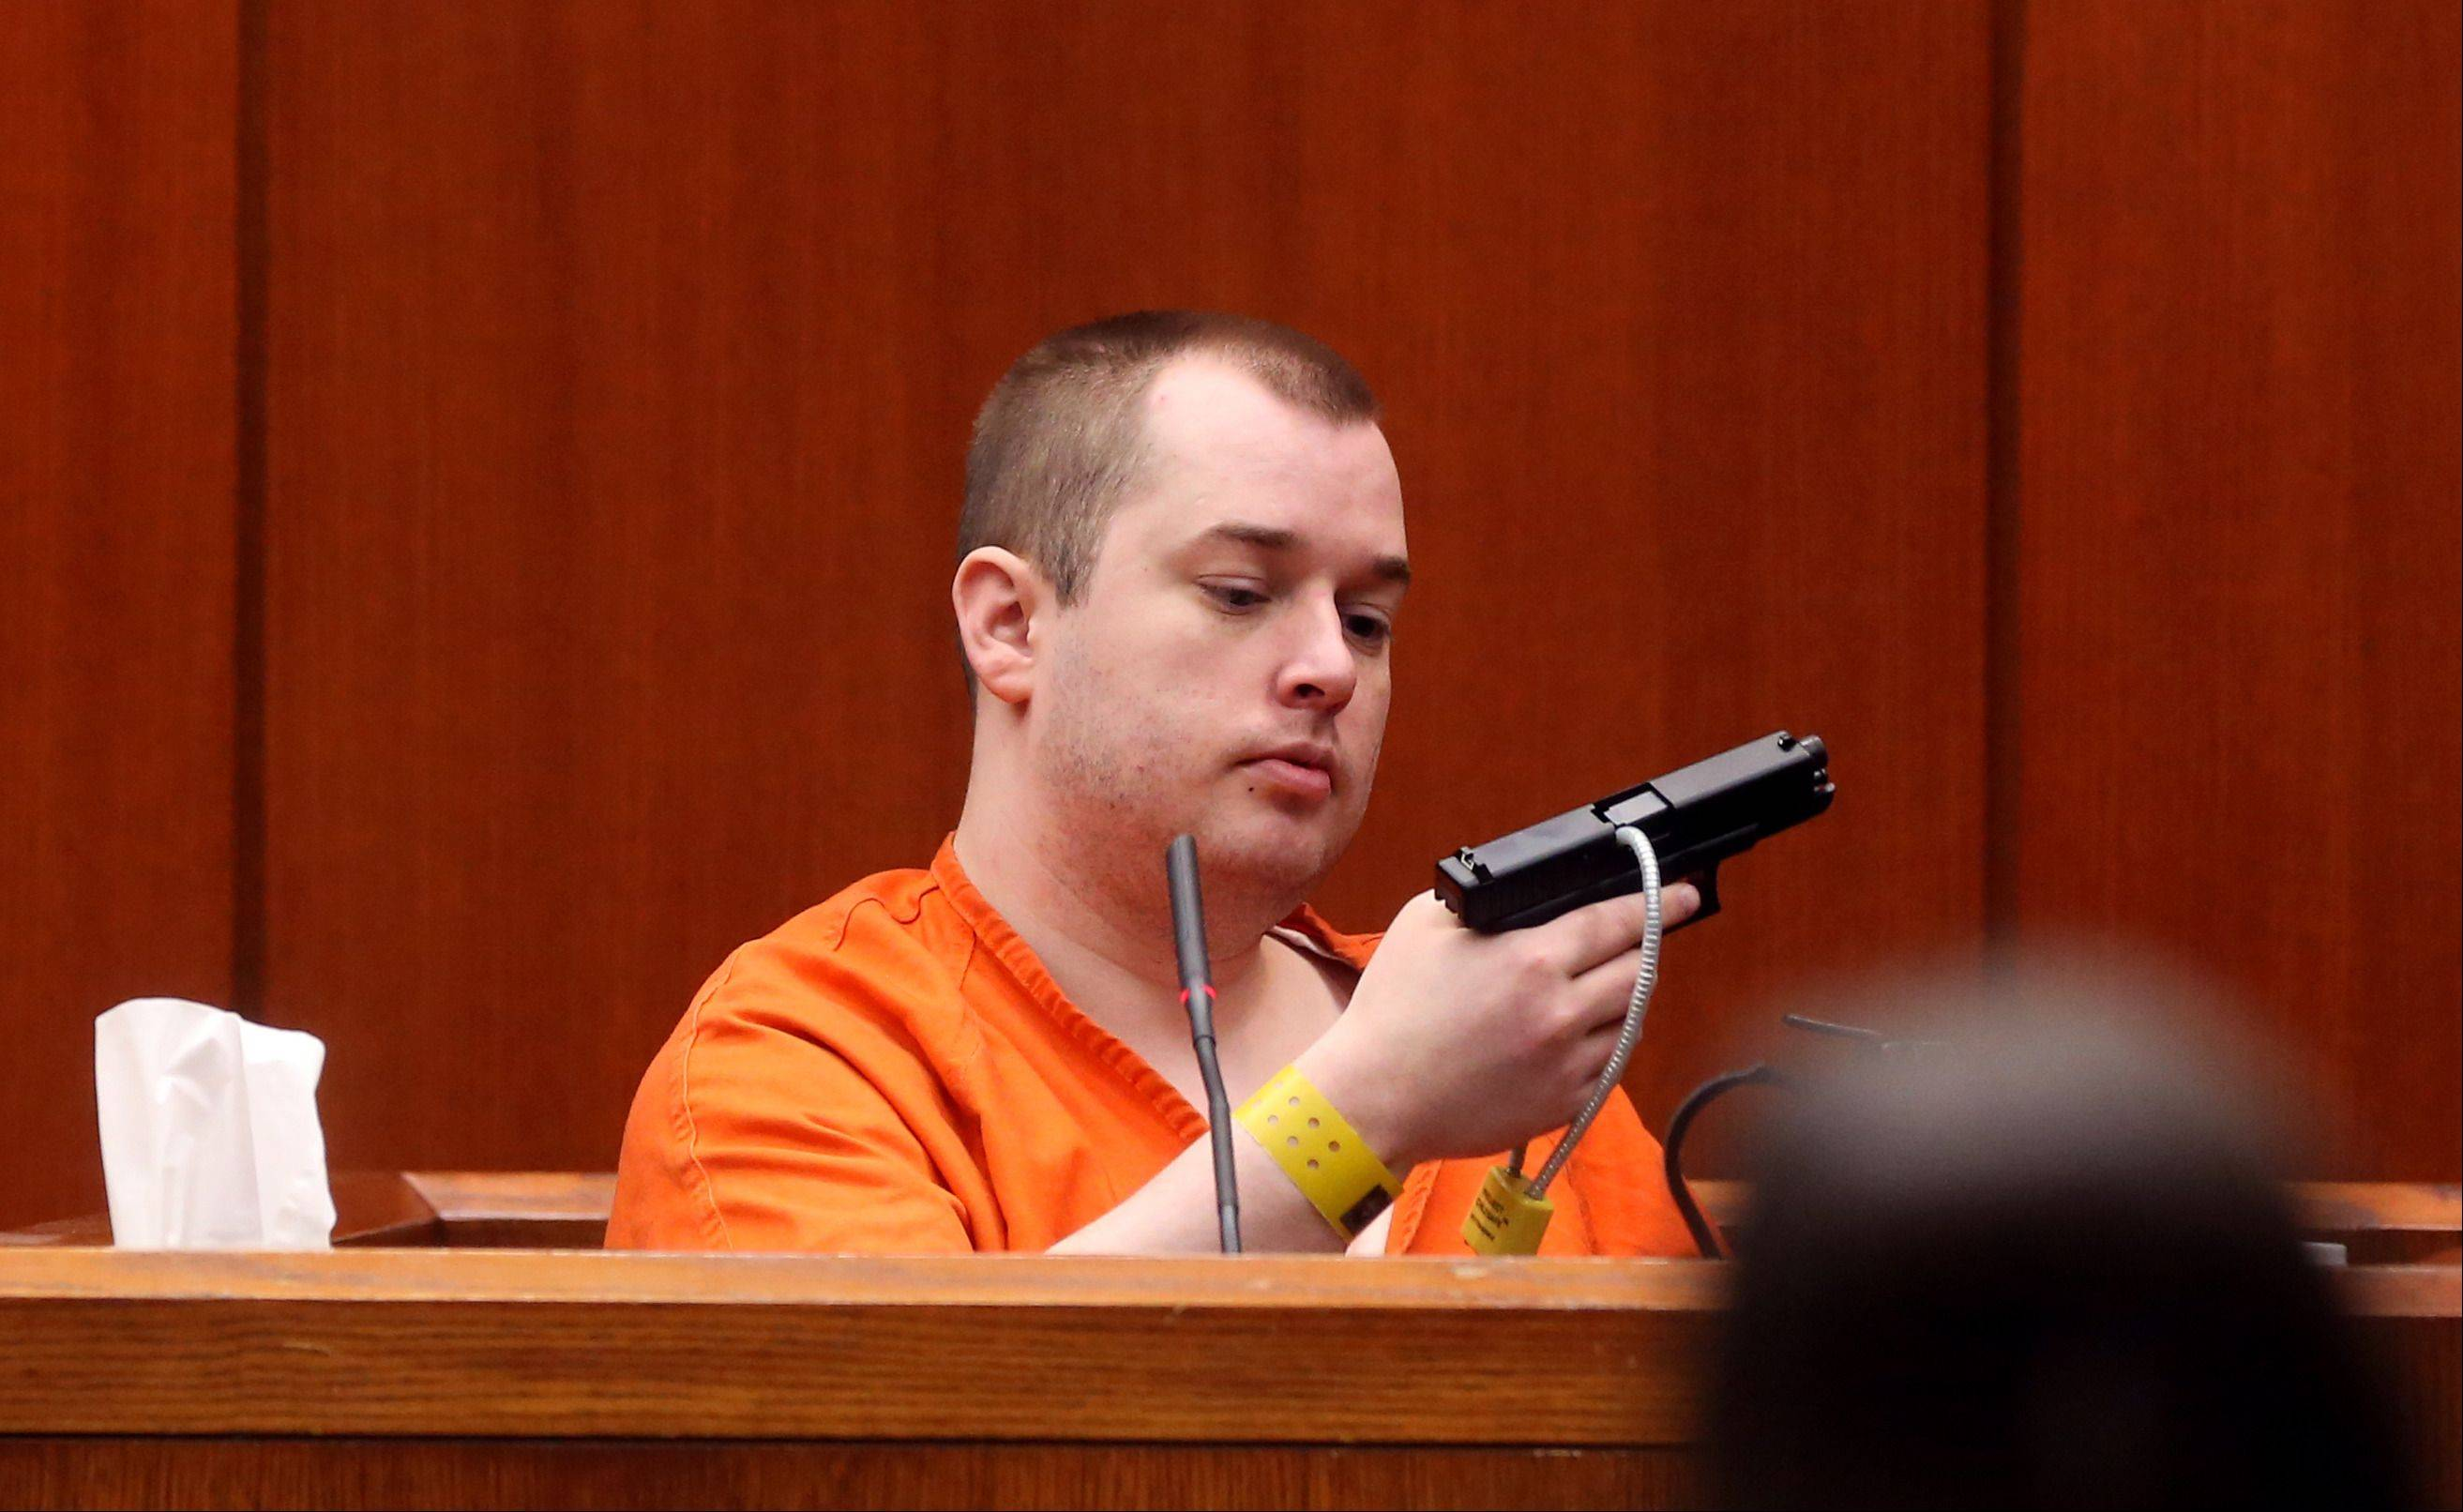 Jacob Nodarse holds the gun used to kill Michael Kramer, 20, and Kramer's parents, Jeffrey, 50, and Lori, 48, during the defense's cross-examination of him on April 26 in Wheaton.